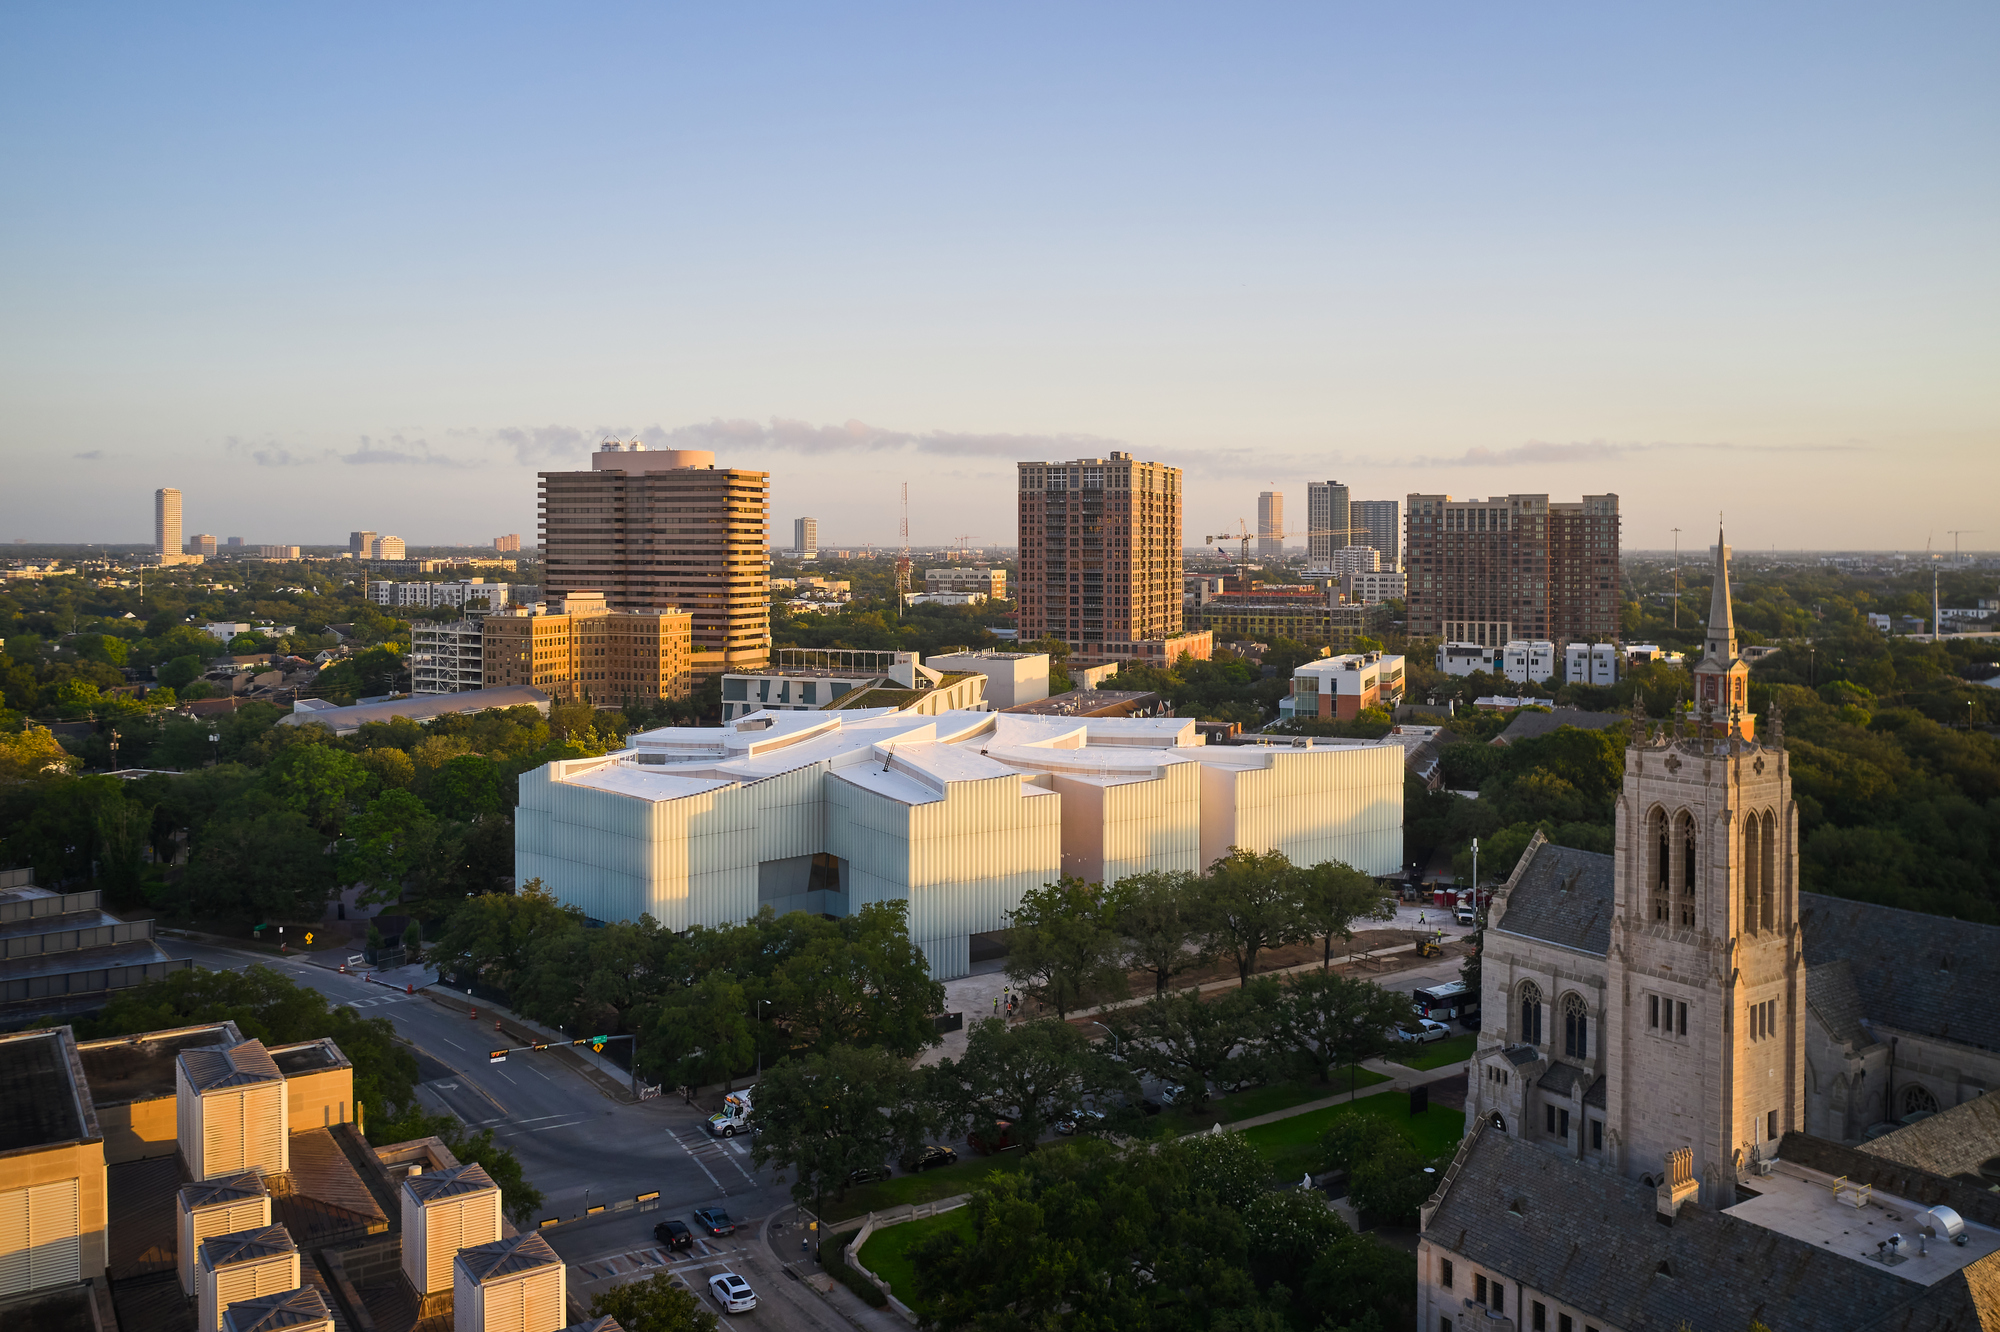 Steven Holl Unveils New Images of the Completed Kinder Building, part of the Museum of Fine Arts in Houston